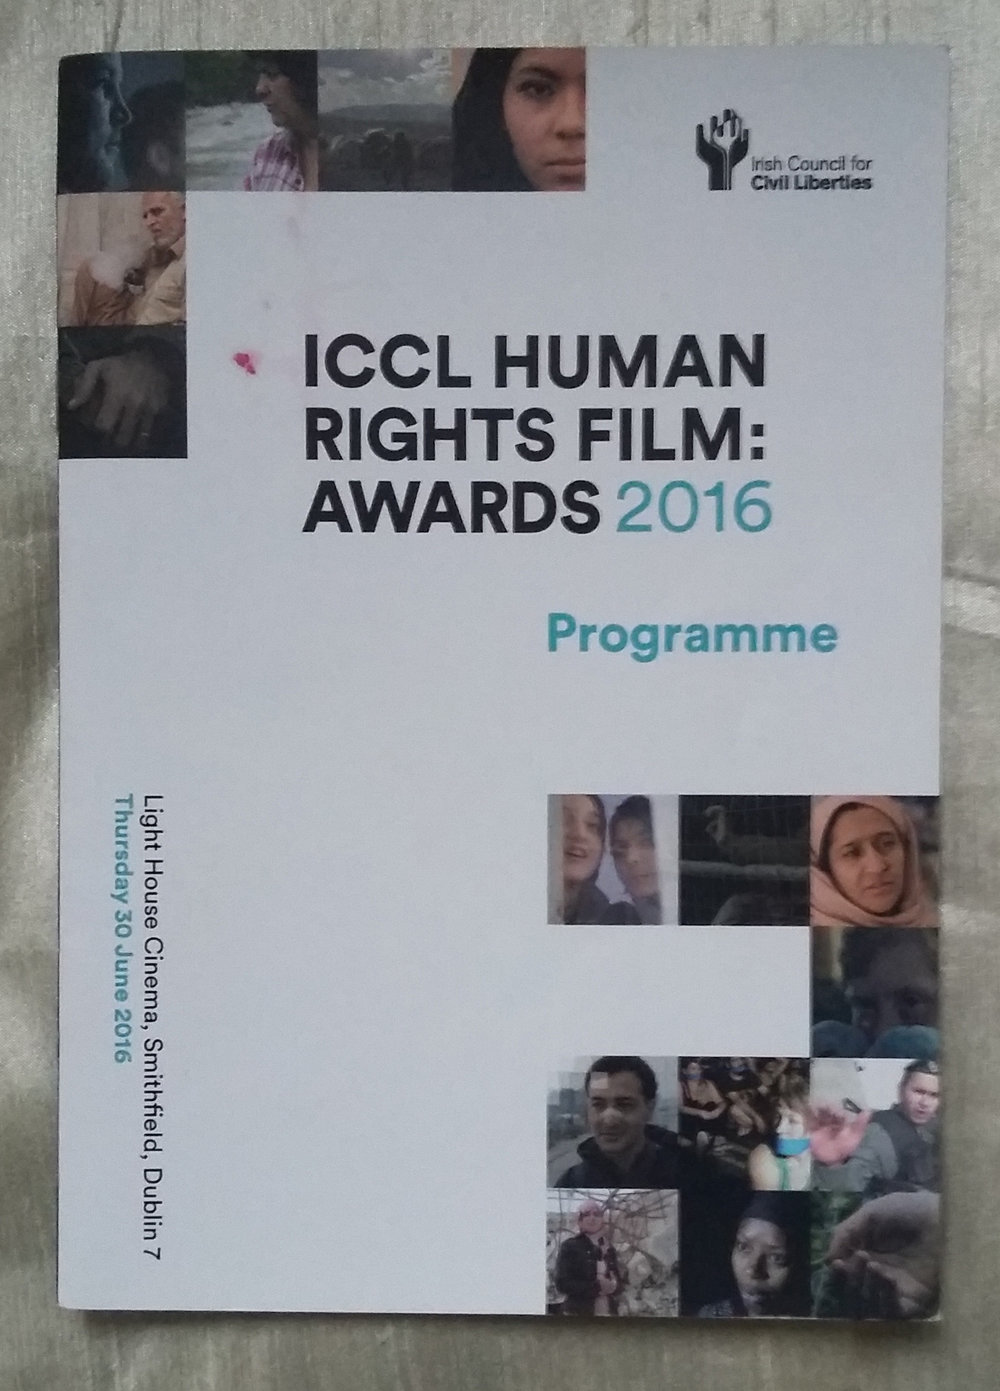 Irish Council for Civil Liberties - ICCL Human Rights Film Awards 2016 Programme